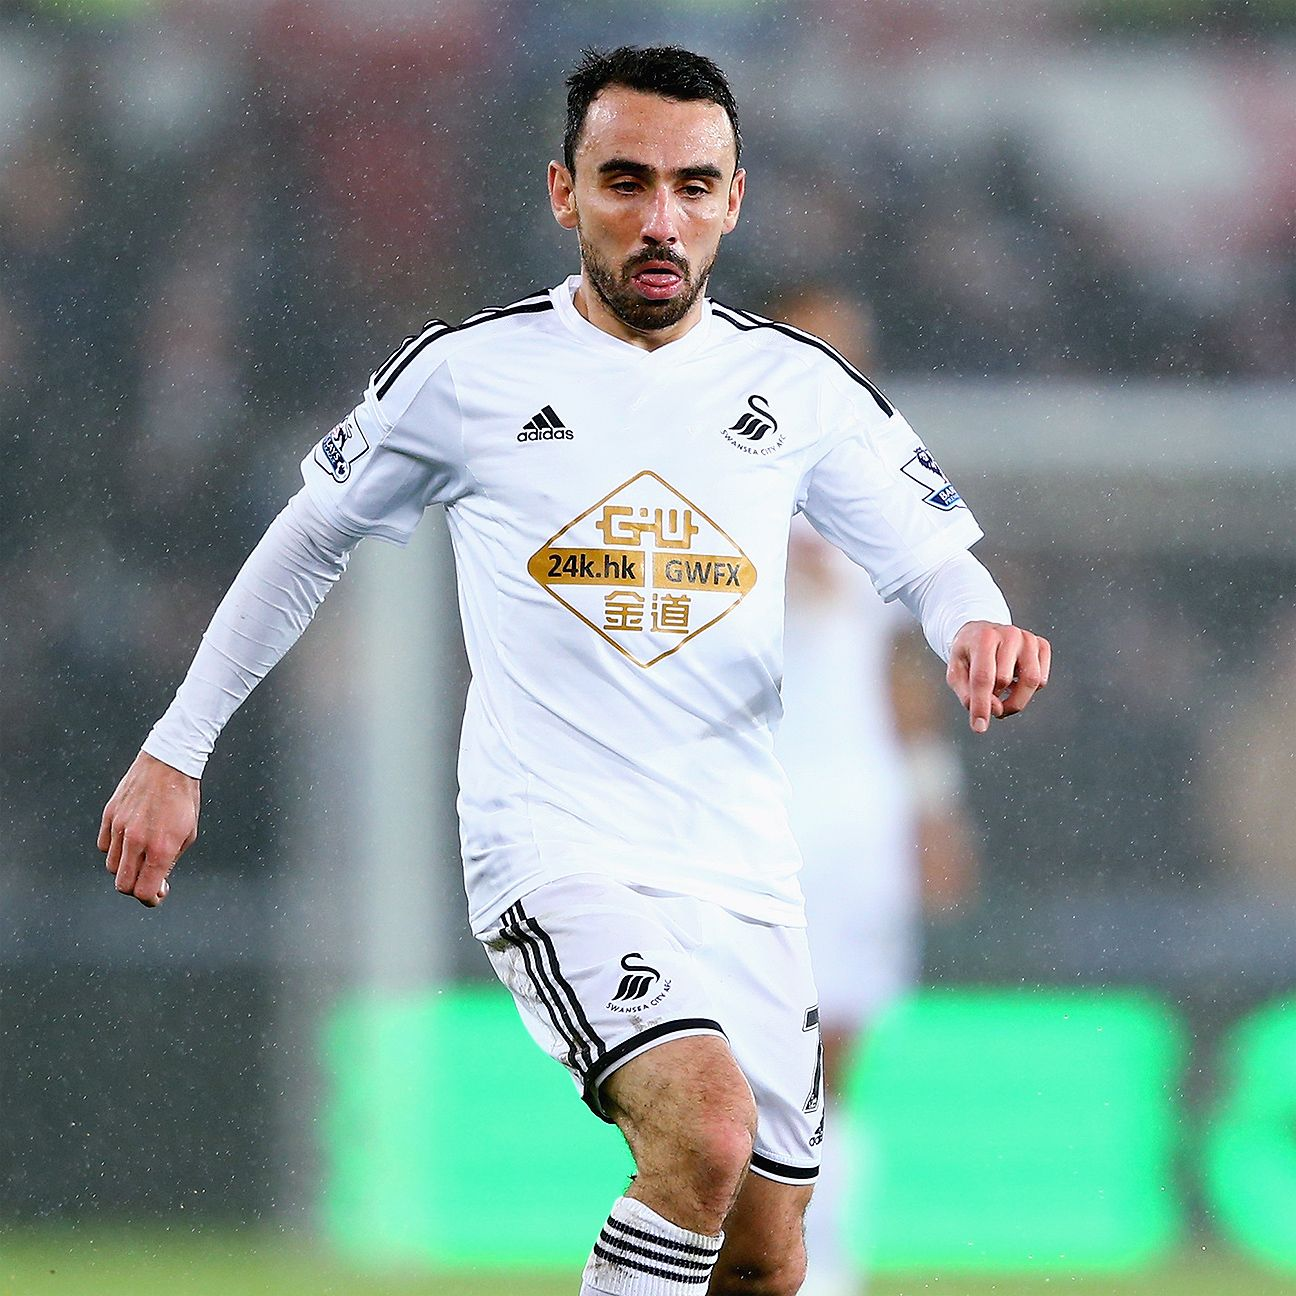 Leon Britton has been part of Swansea's rise ever since the days of League Two.